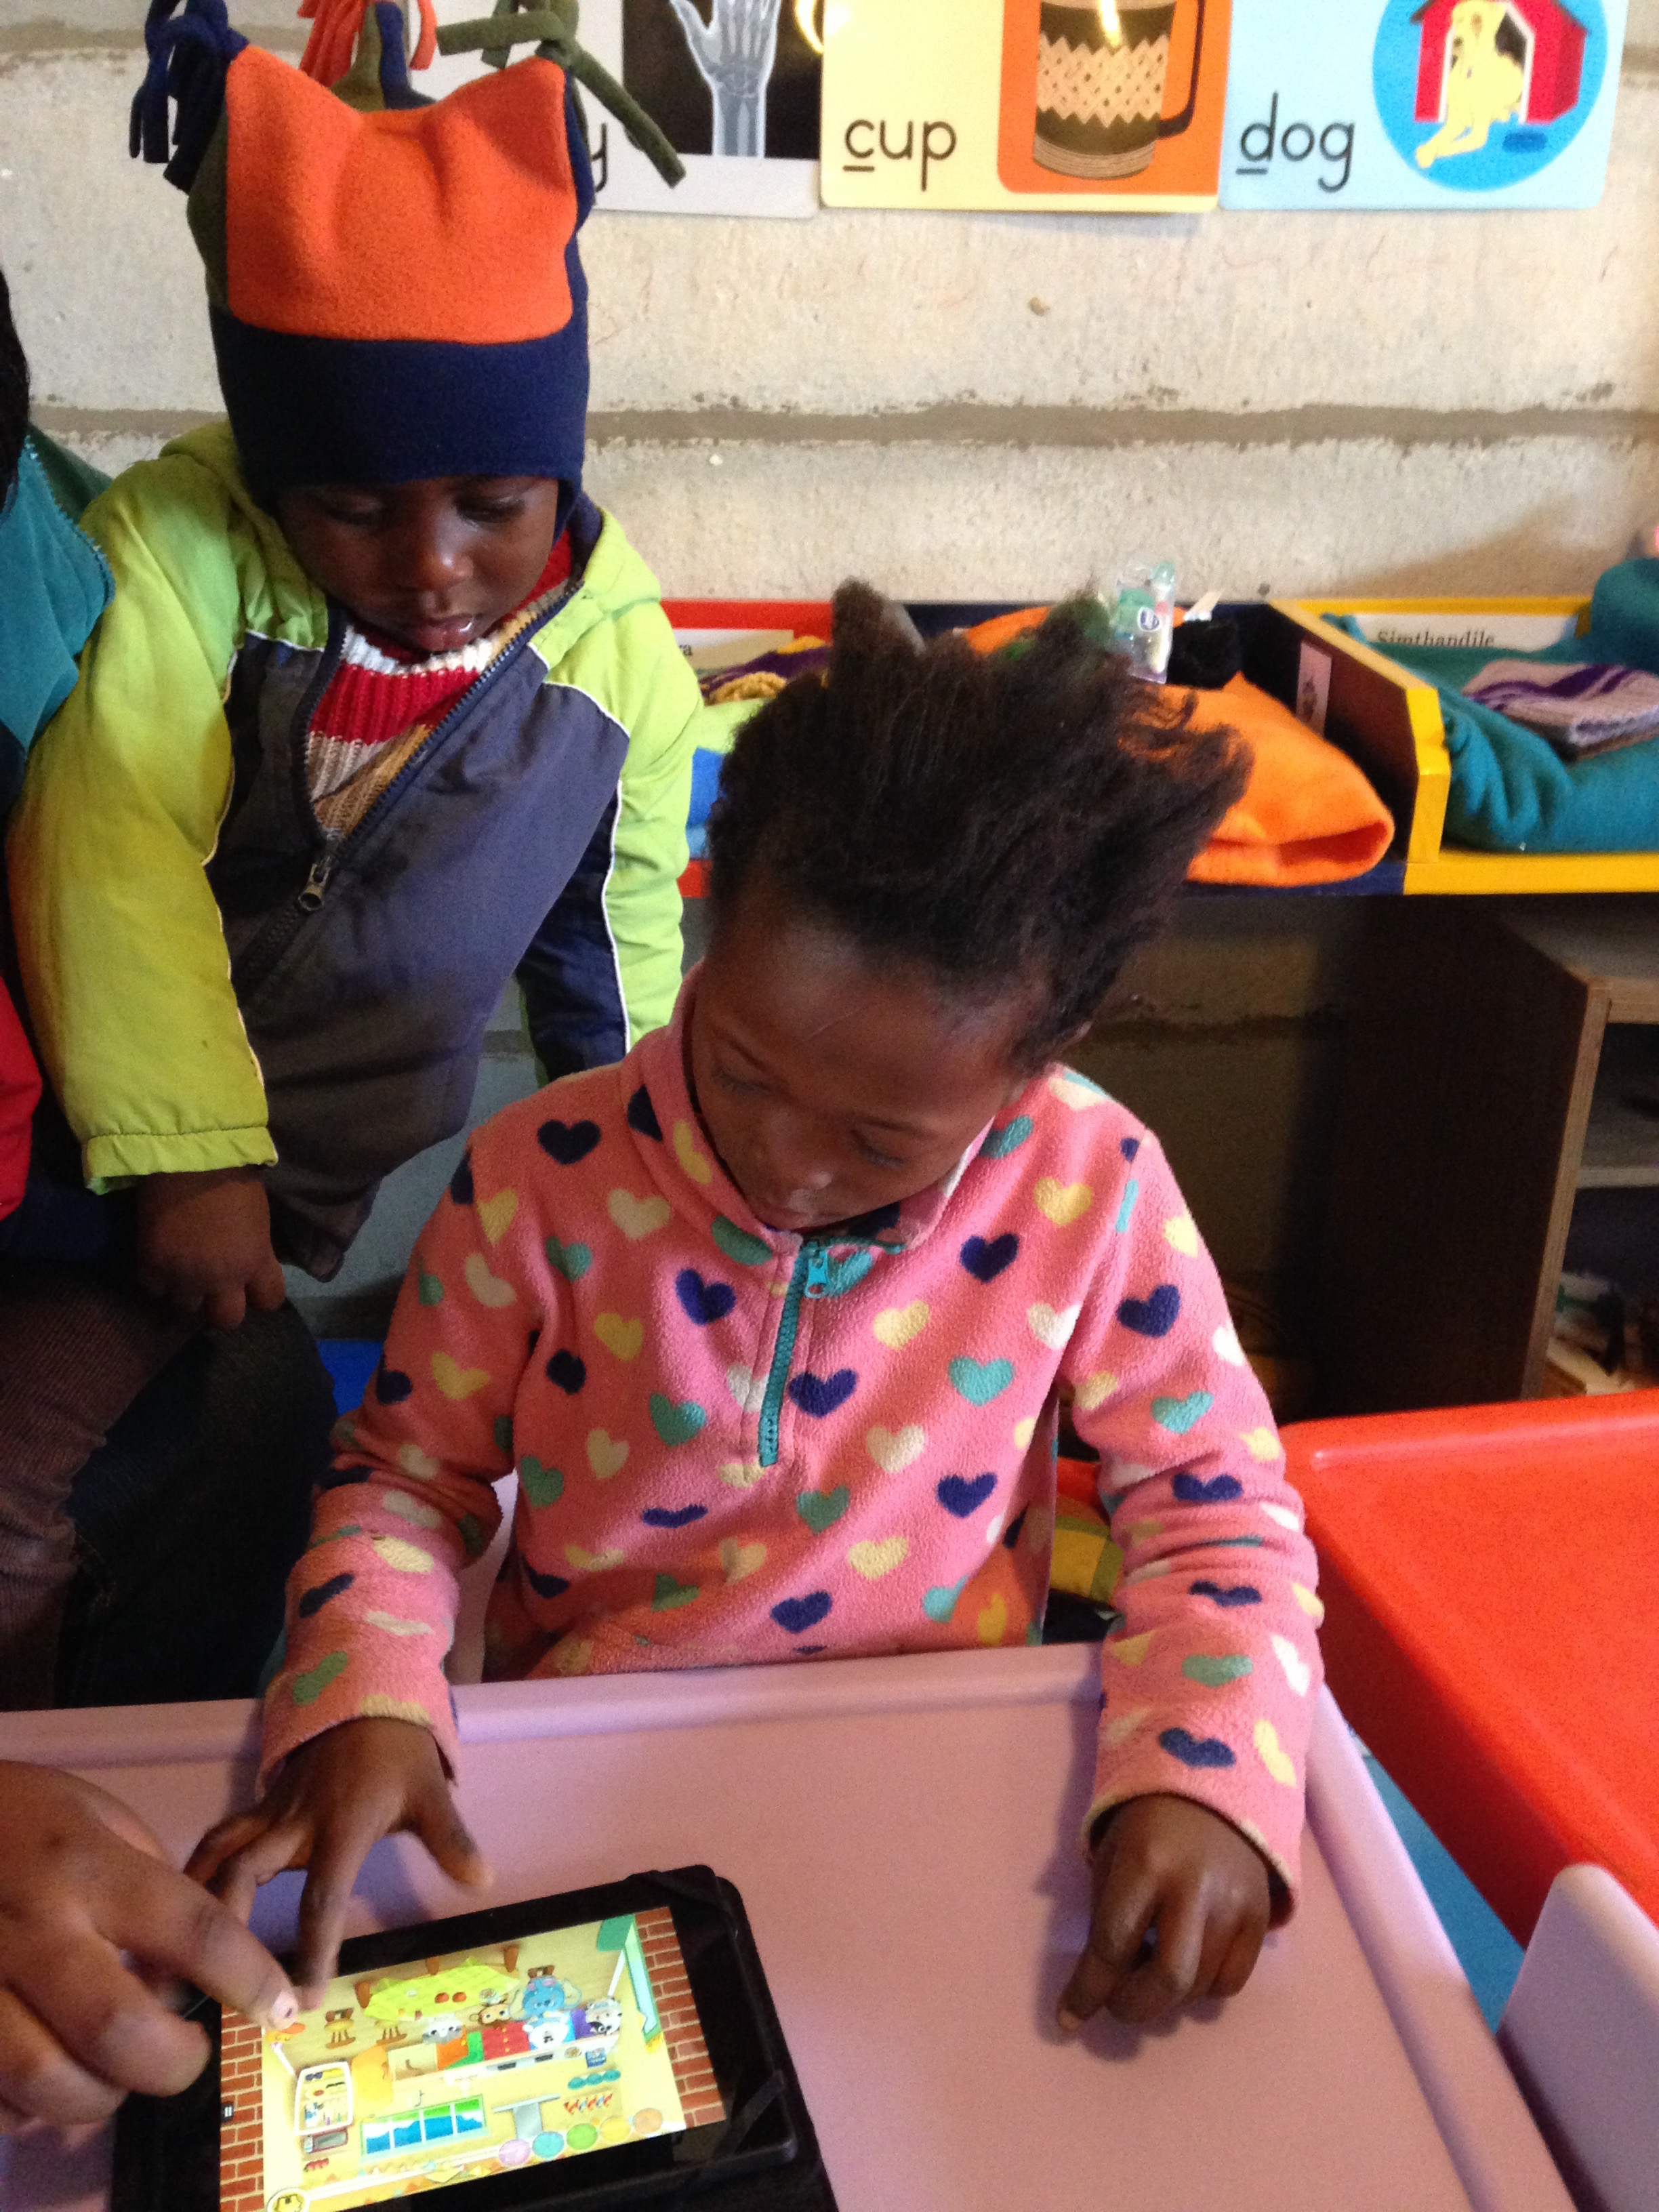 kindergarten learner playing an academic game on a brand new kindle tablet